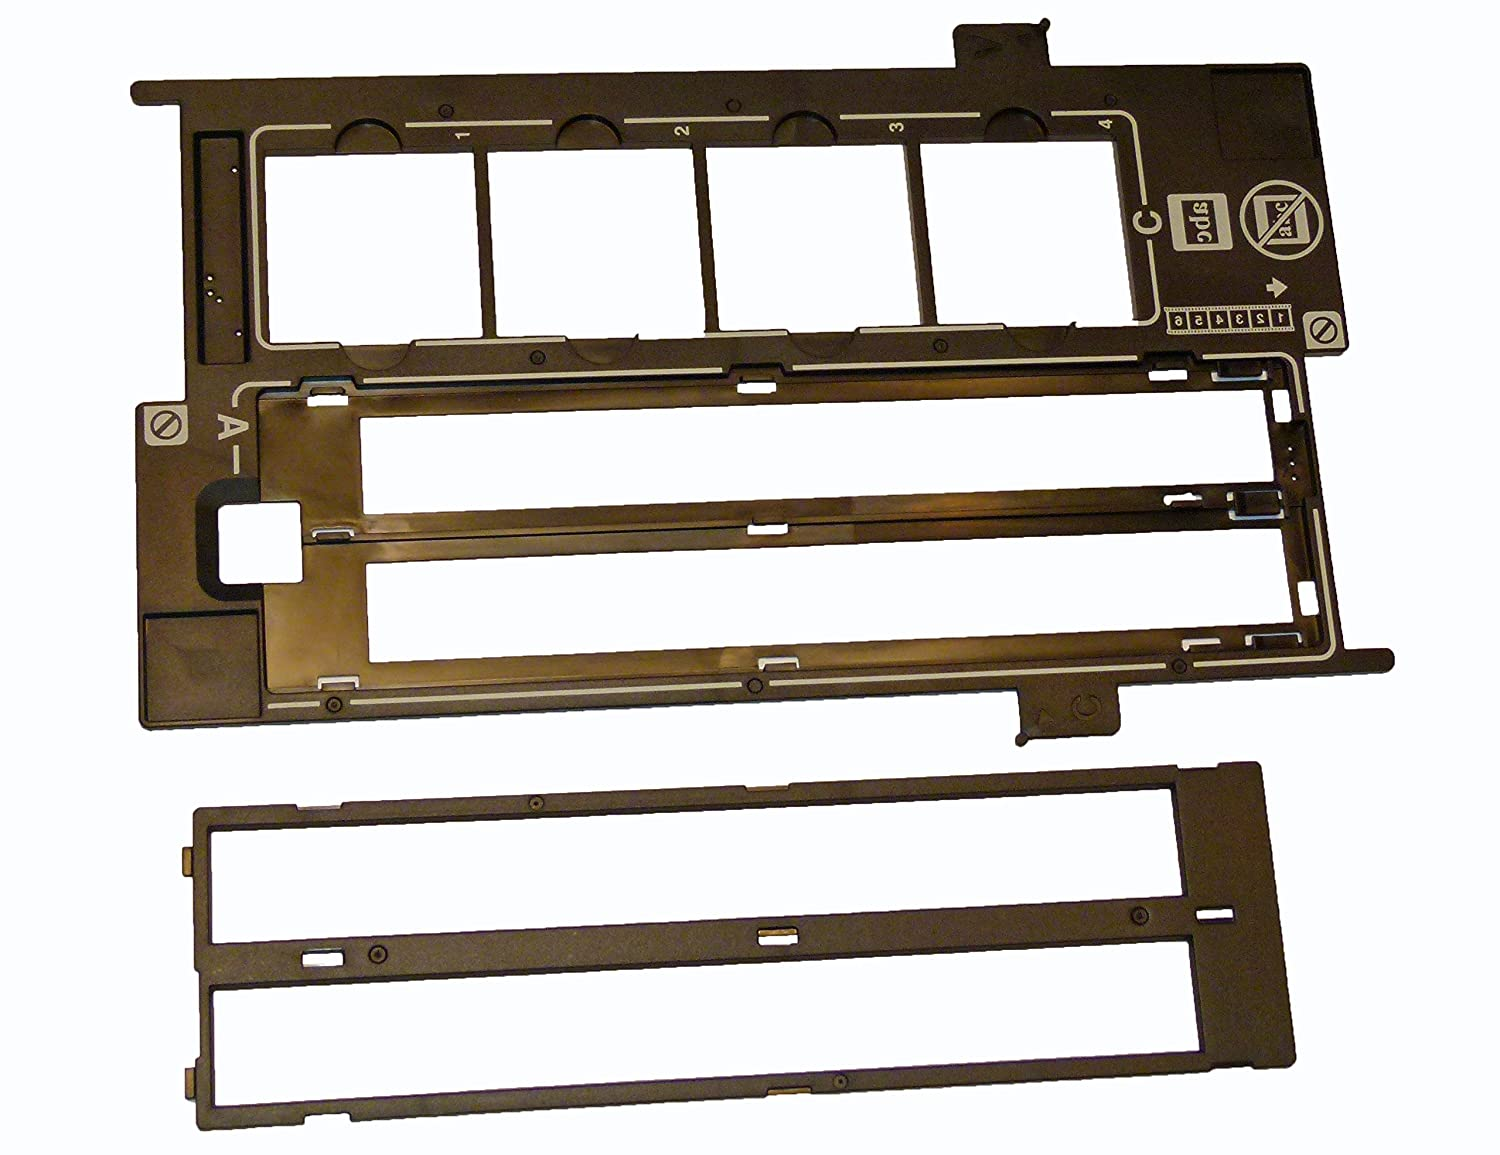 Epson Perfection V500 - Slide Holder & 35mm Film Holder Or Film Guide Negative Or Positive